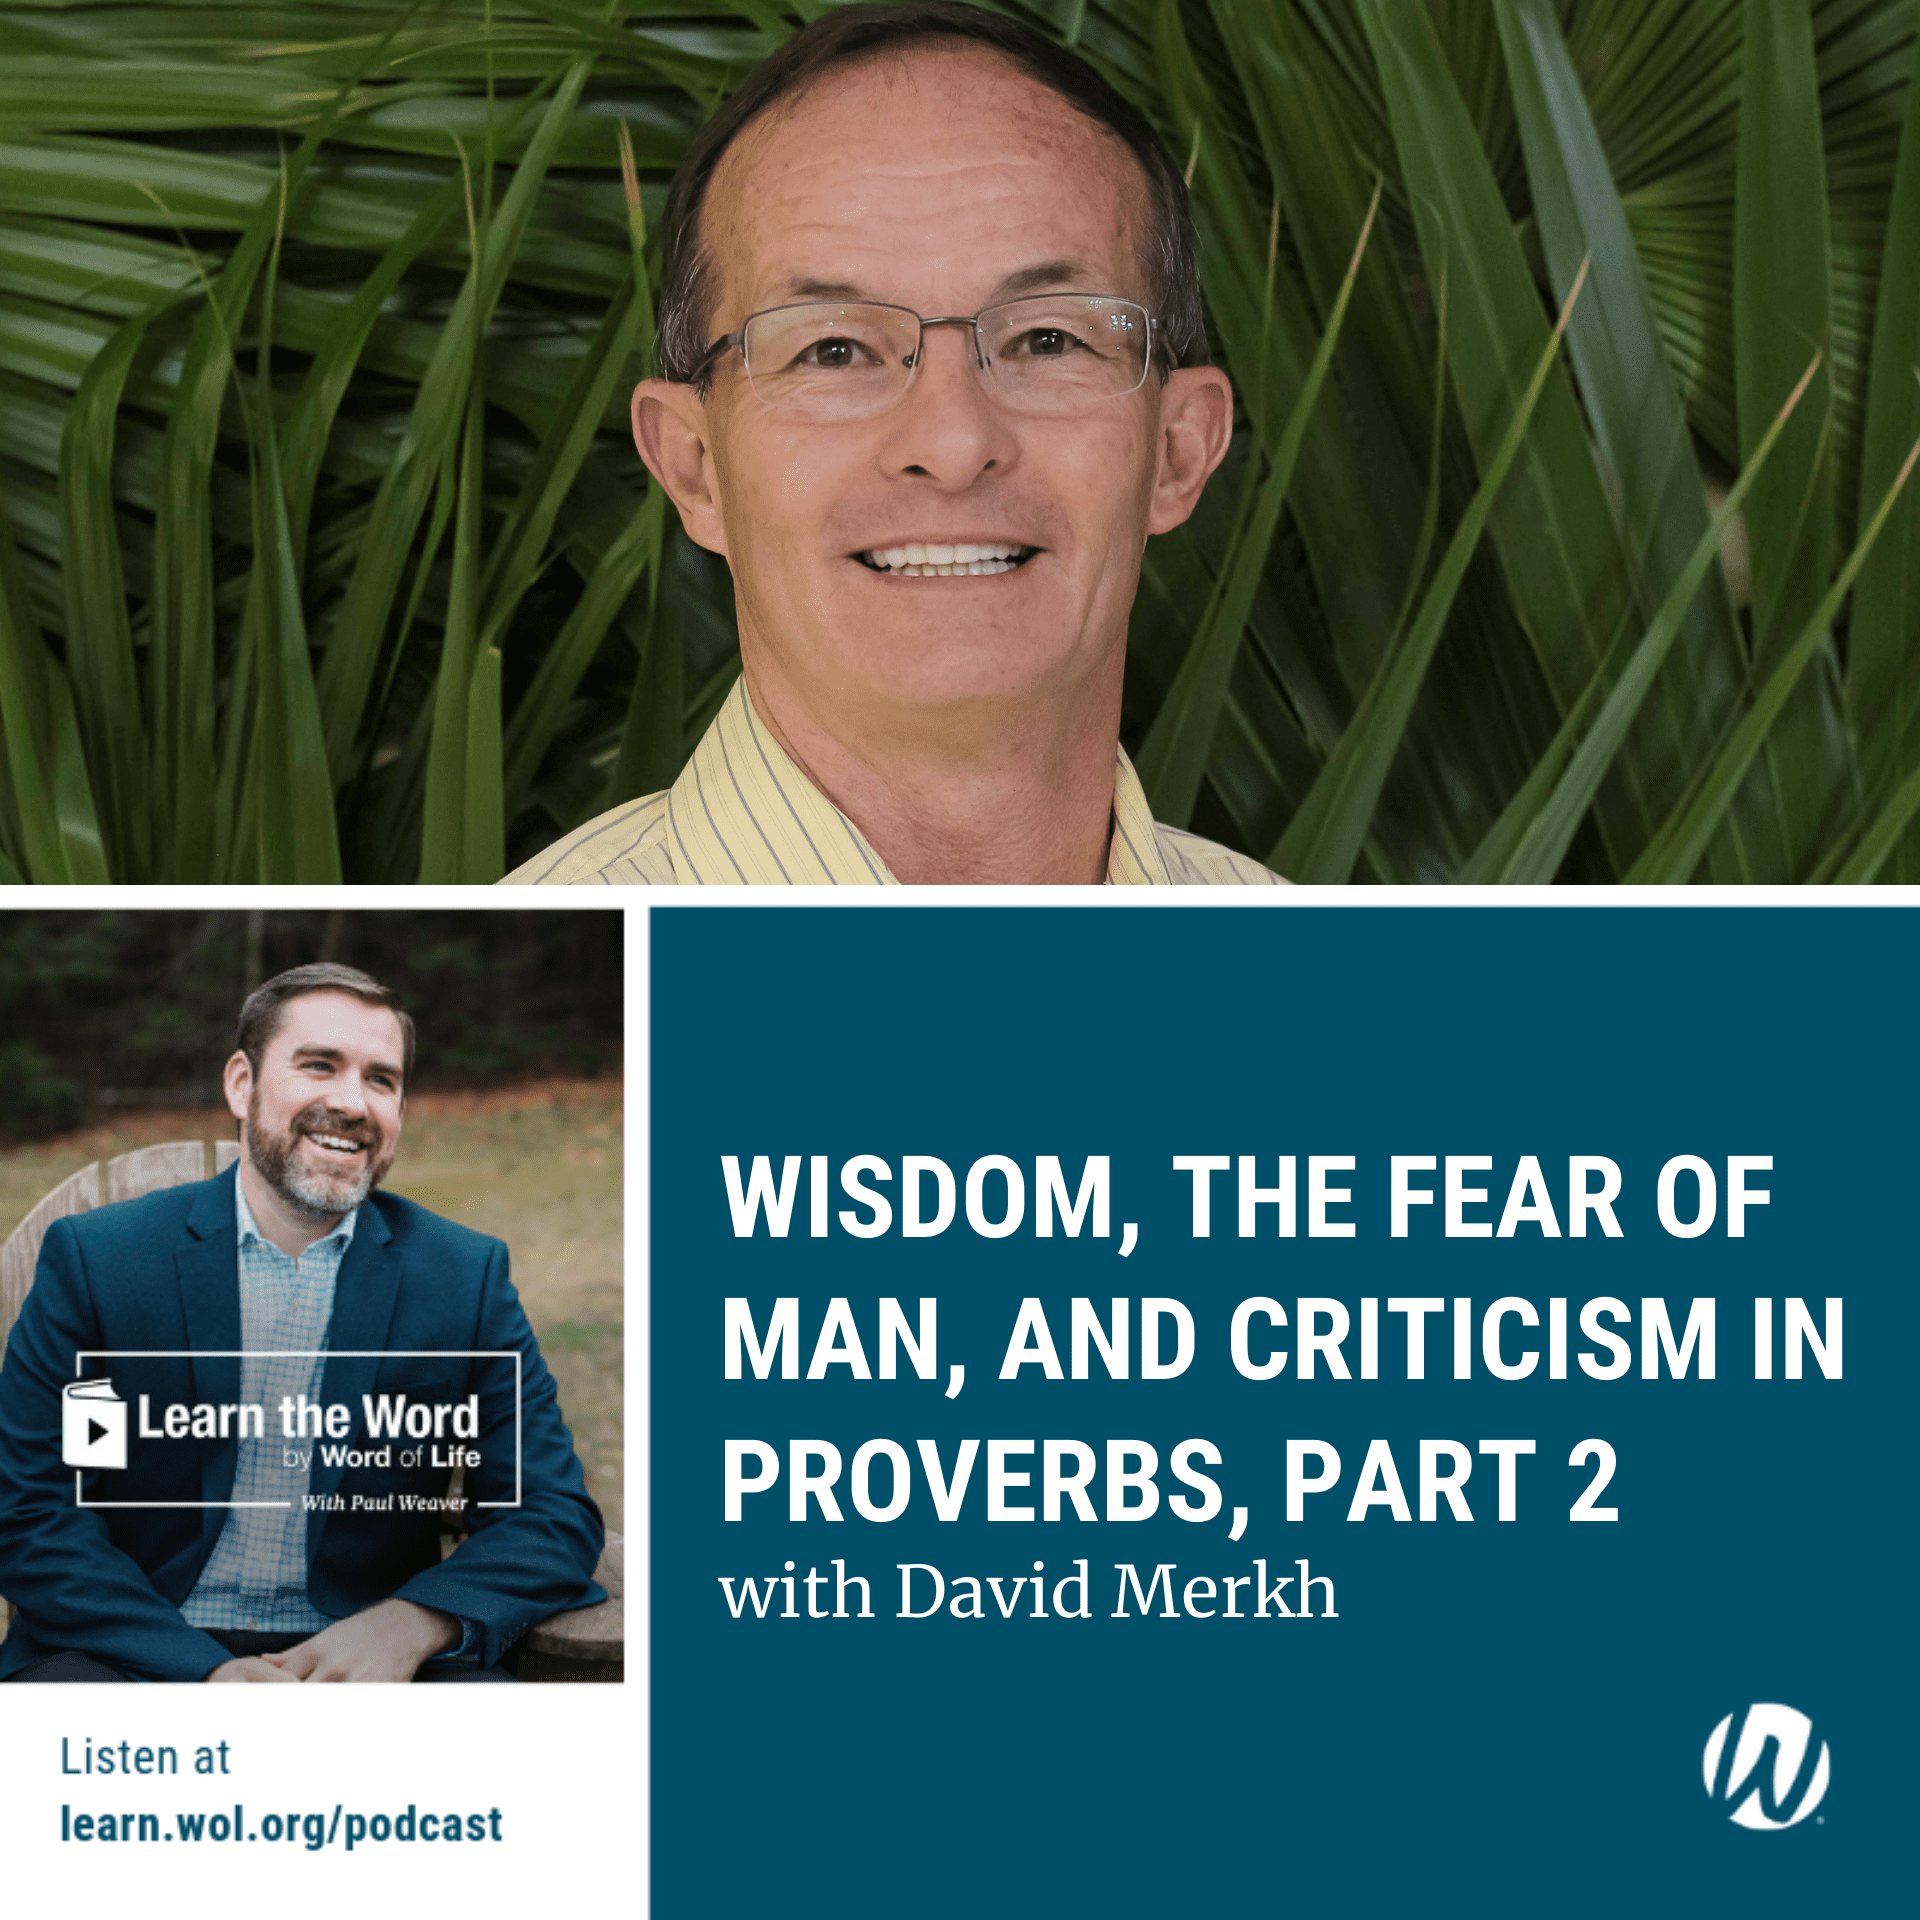 LTW158 - Wisdom, the Fear of Man, and Criticism in Proverbs, Part 2